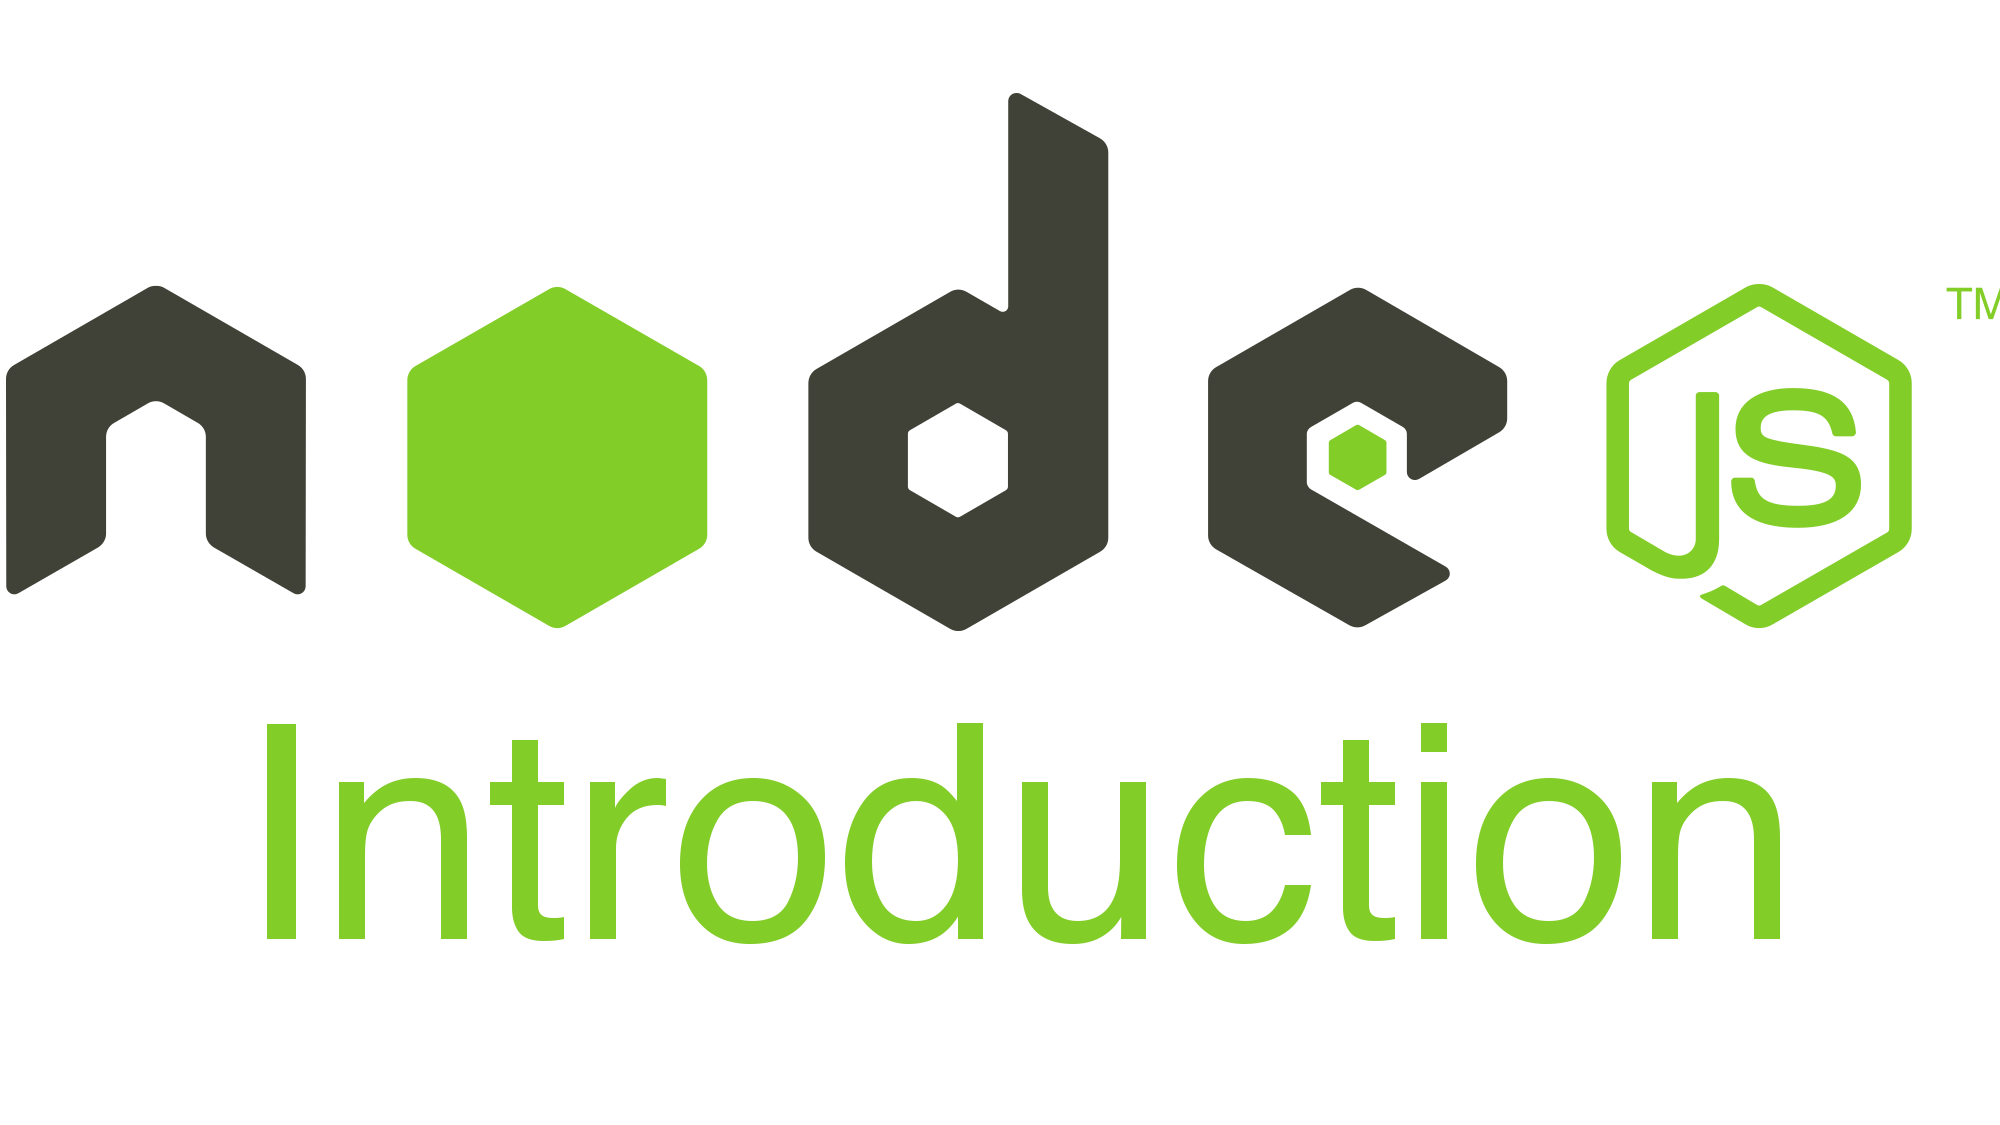 🔖 [Nodejs] Introduction to Nodejs